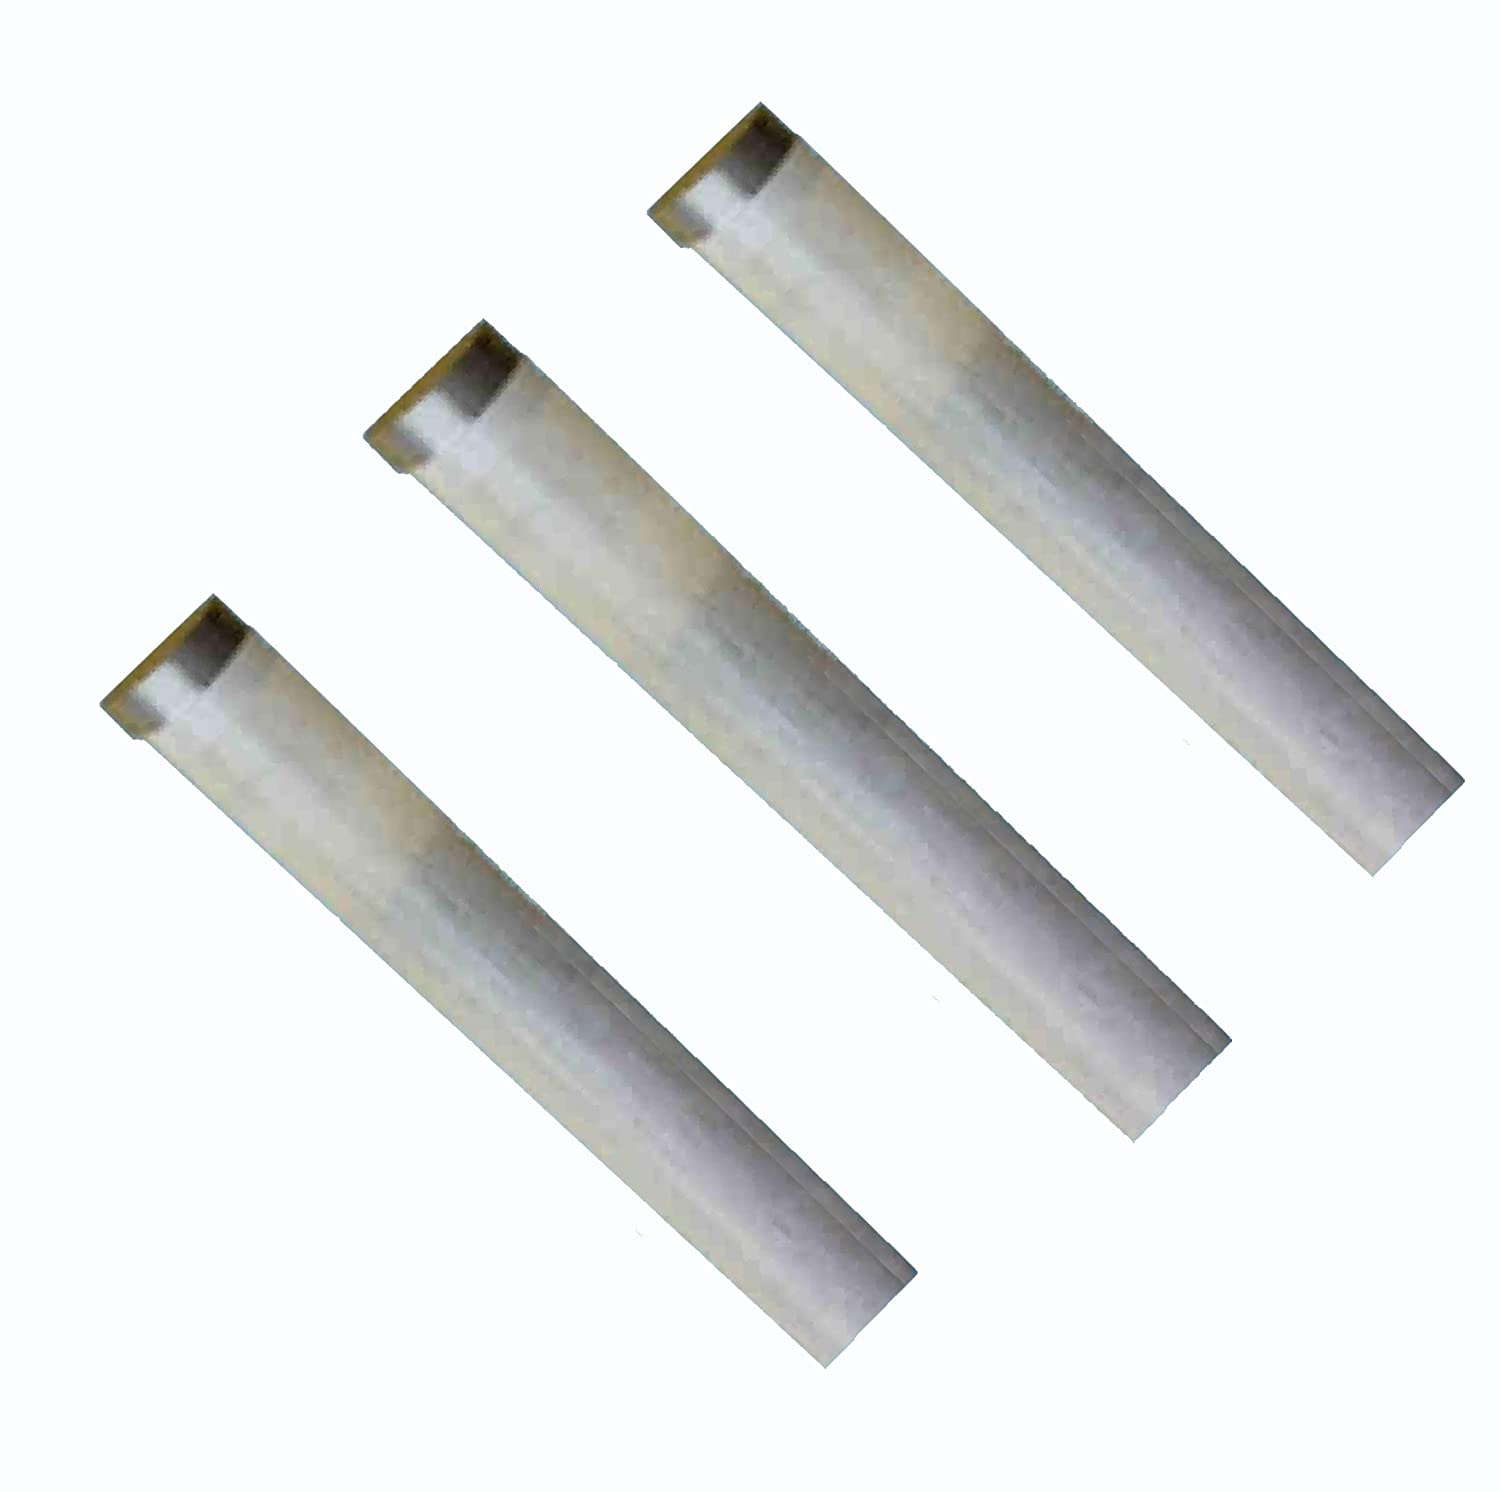 ELEMENTERY LIMITED 3 X Glen Type Silica Infrared Electric Fire Bar Glass Element S100F 085492 BF9300 1000W 554mm / 21 13/16'